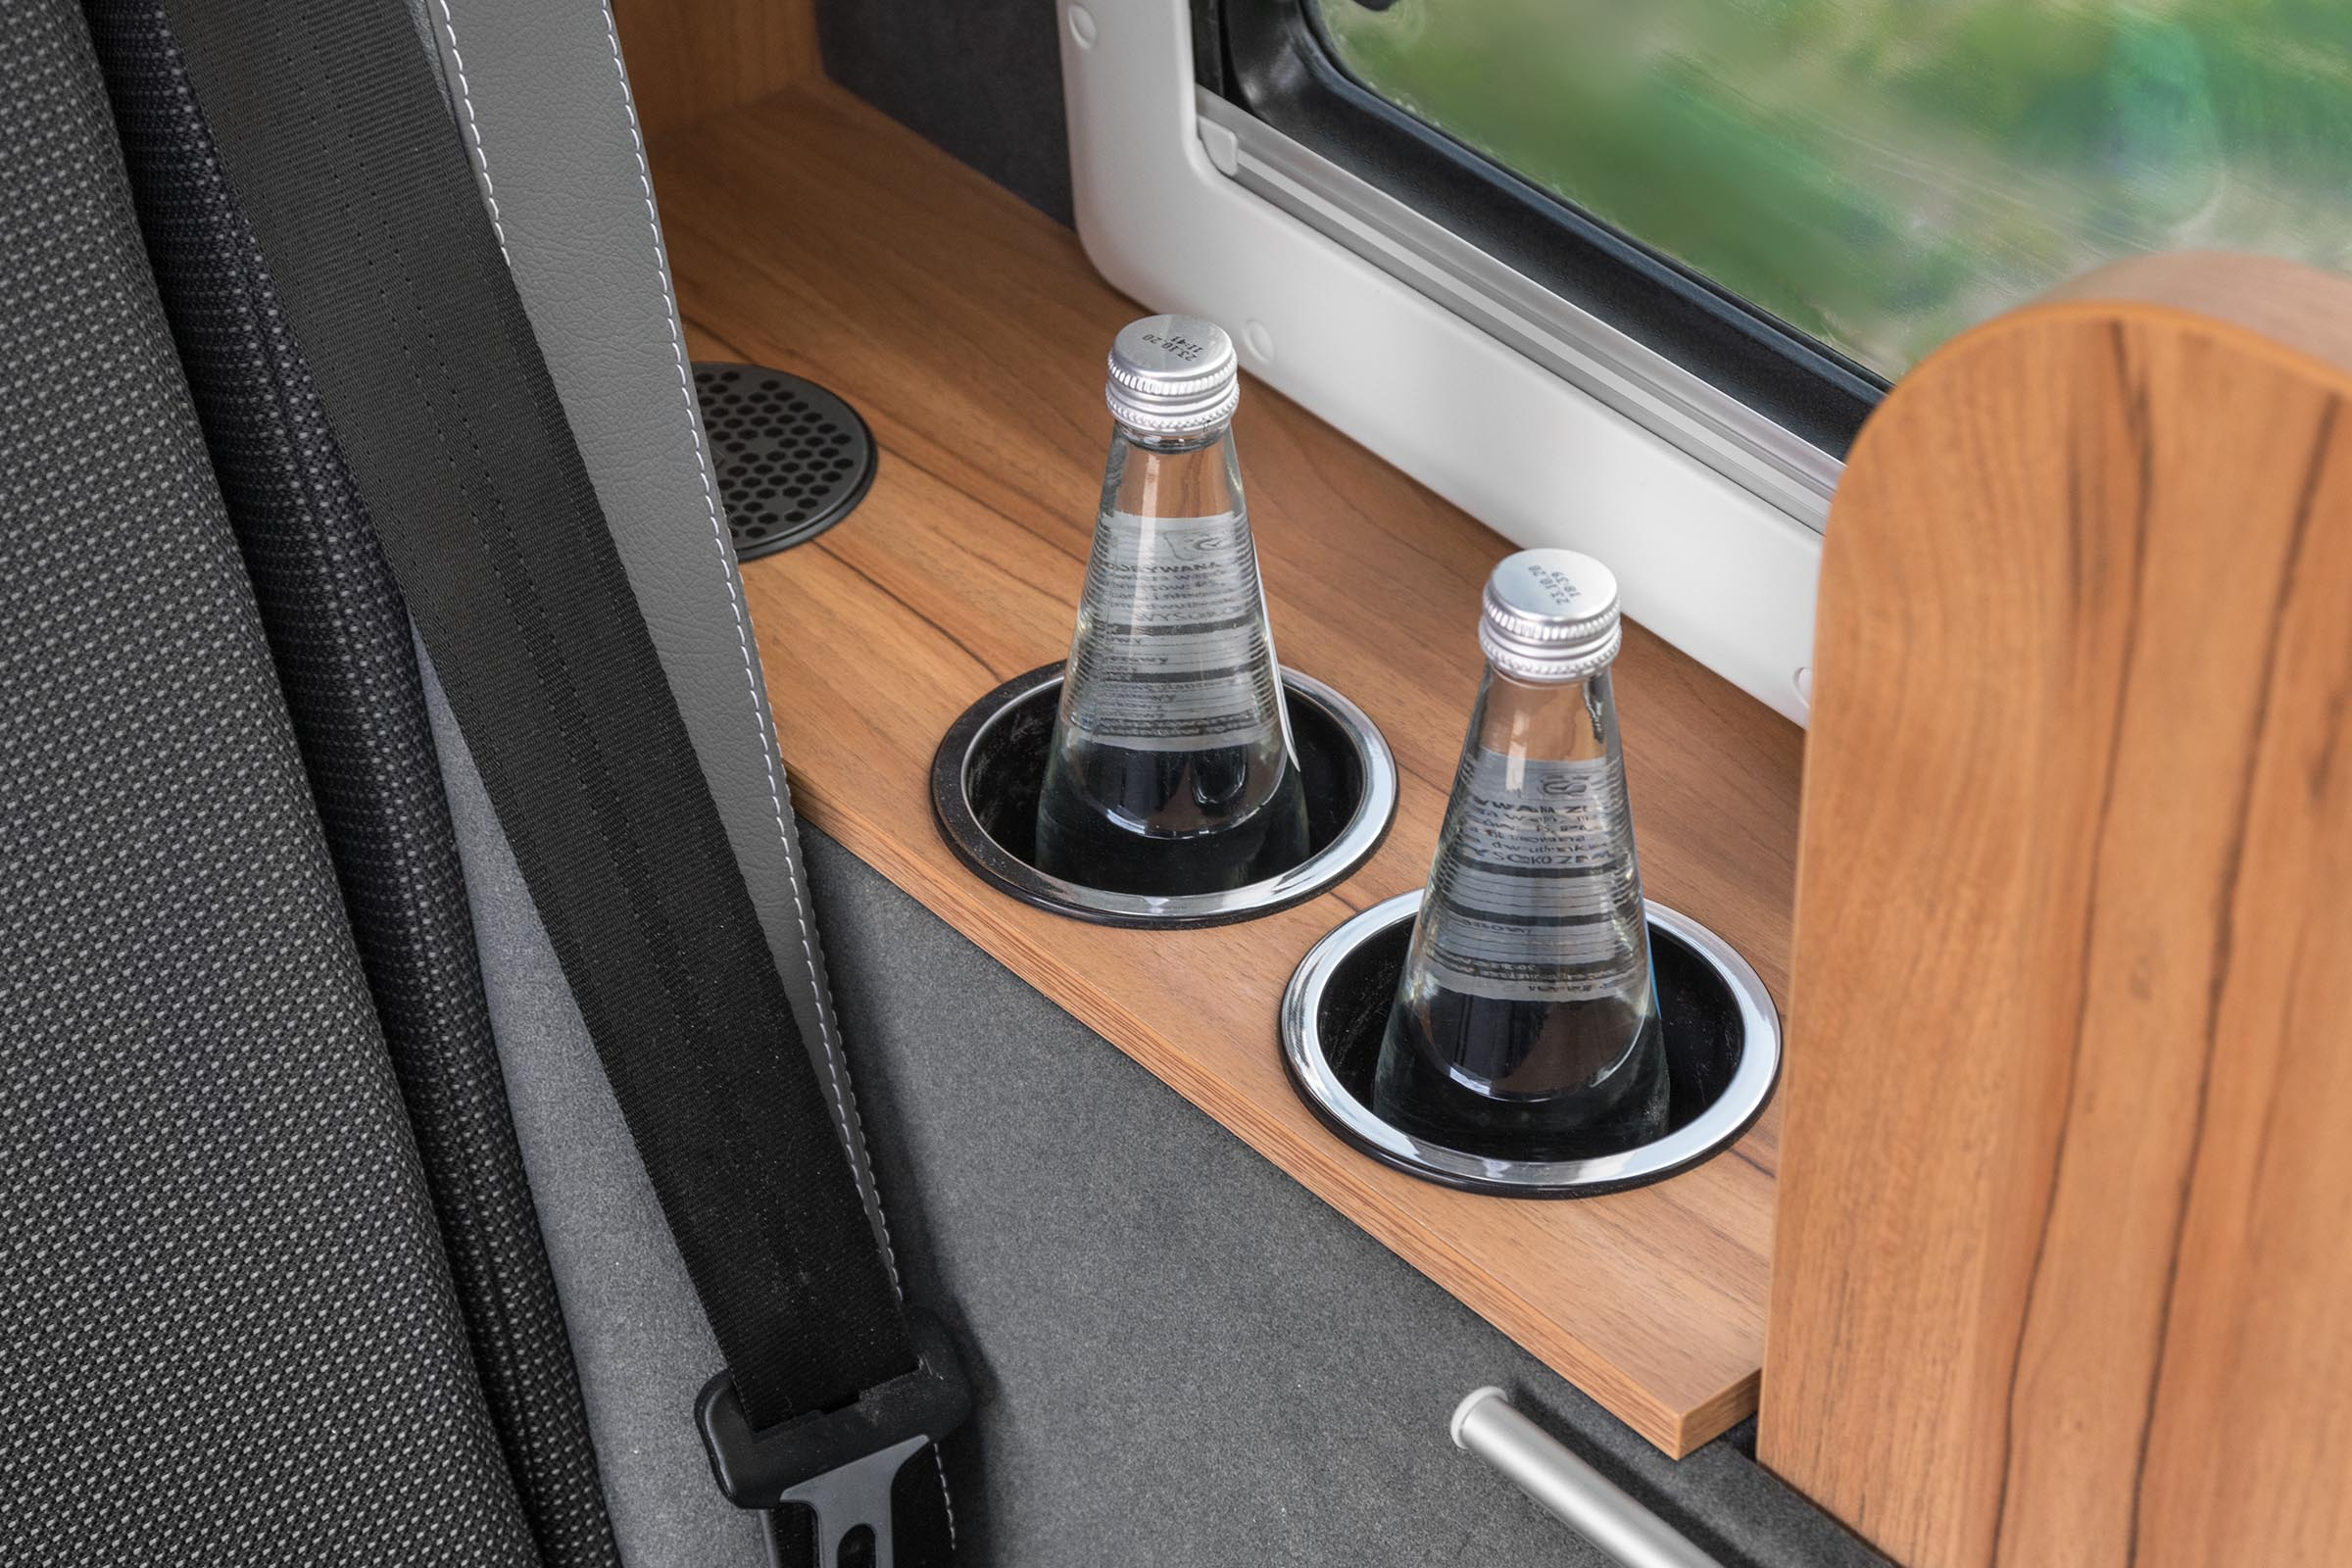 USB plugs in a camper van